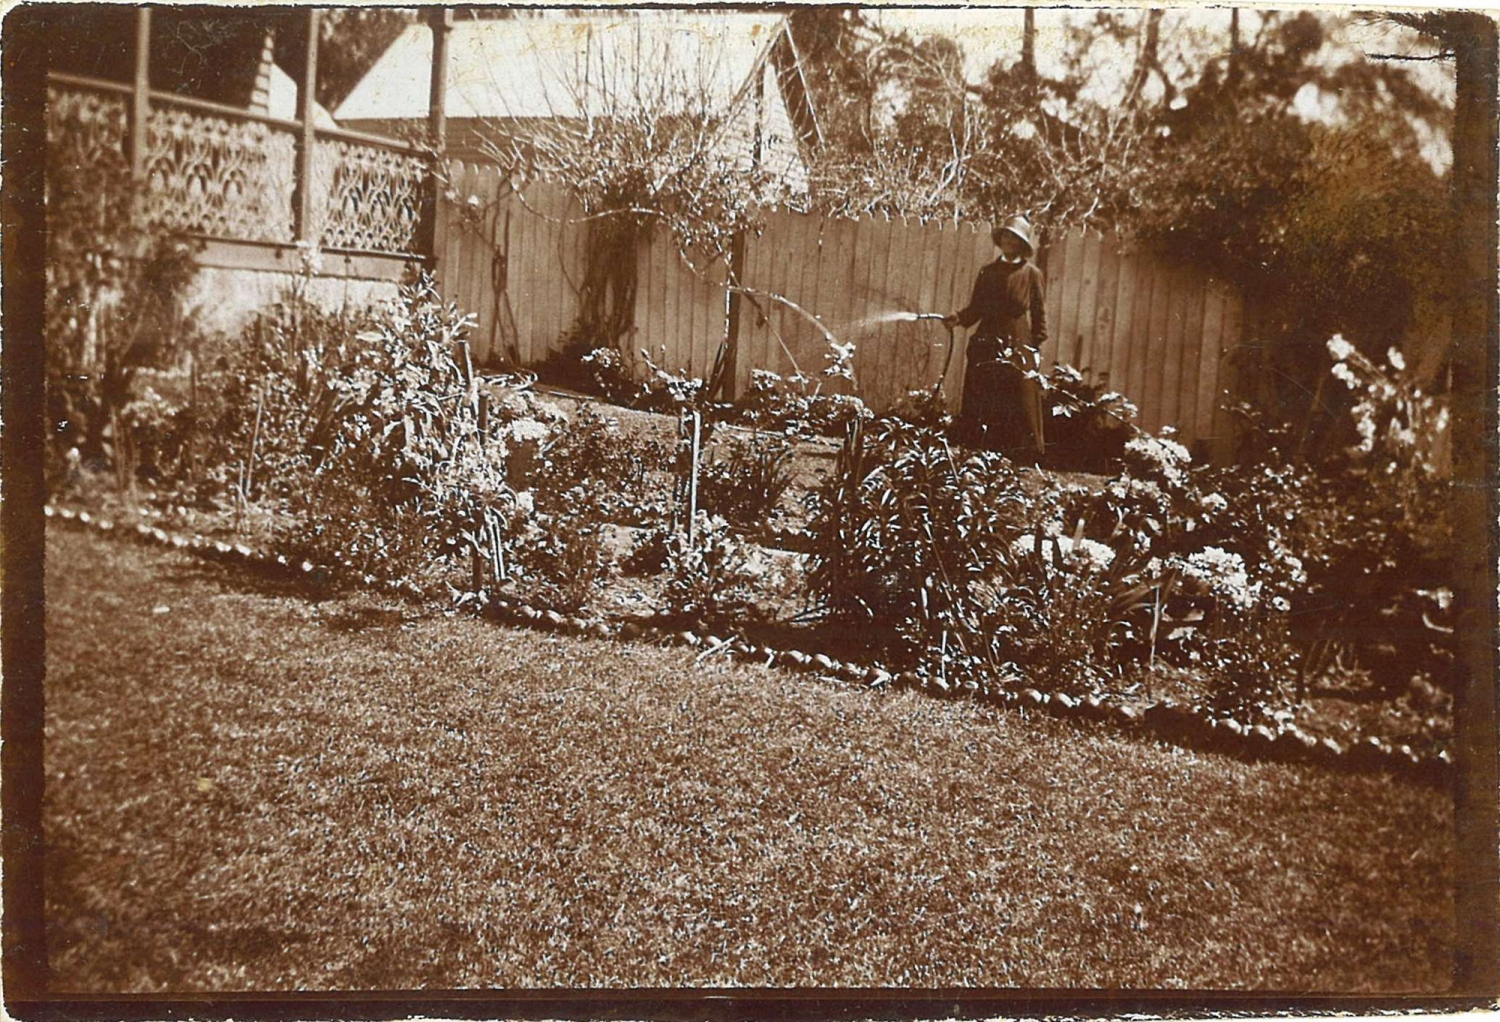 Black and white photo of garden beds.